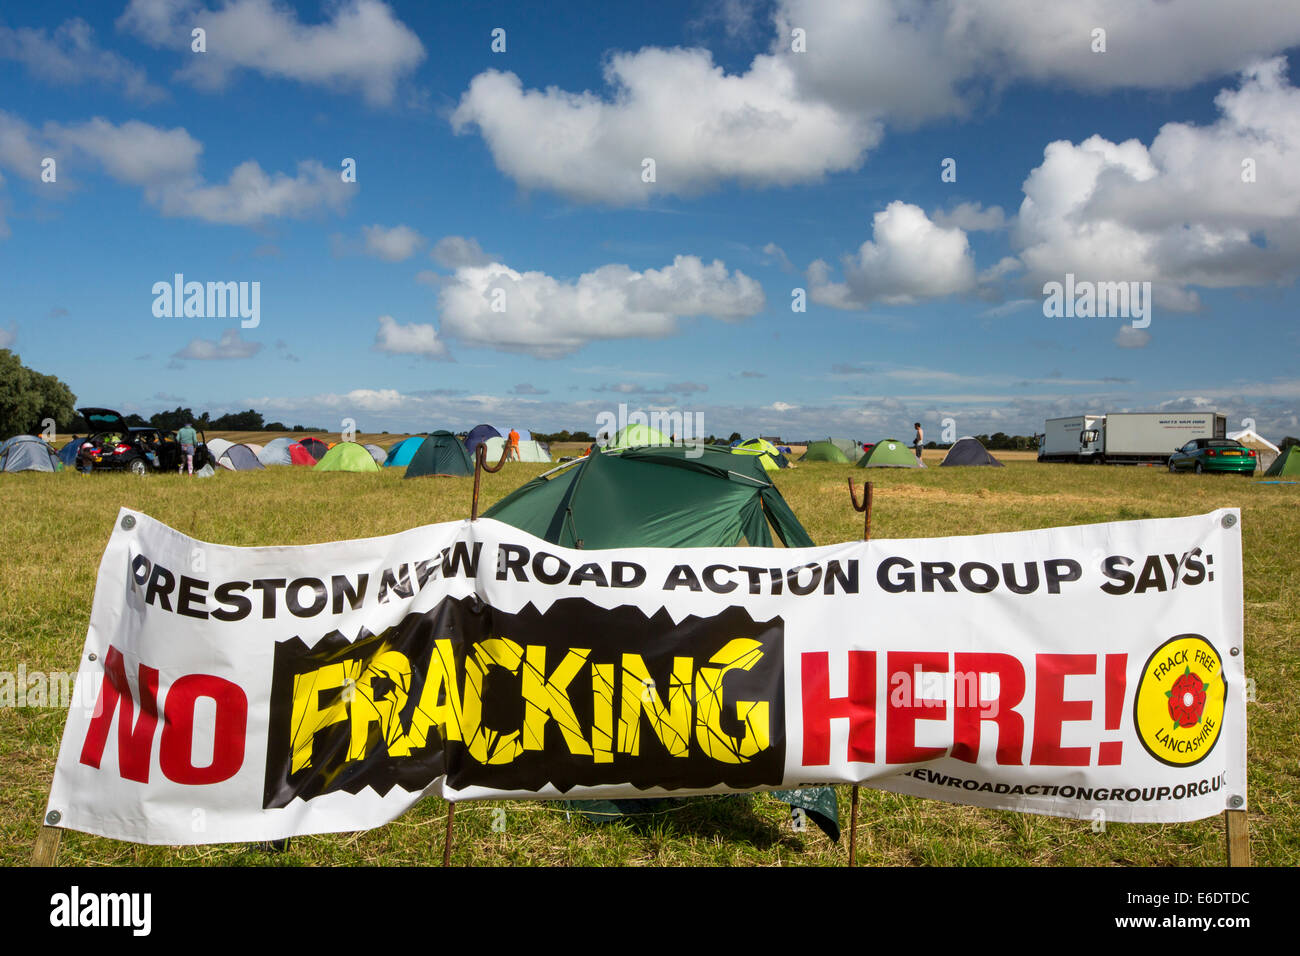 Protest banners against fracking at a farm site at Little Plumpton near Blackpool, Lancashire, UK, where the council - Stock Image